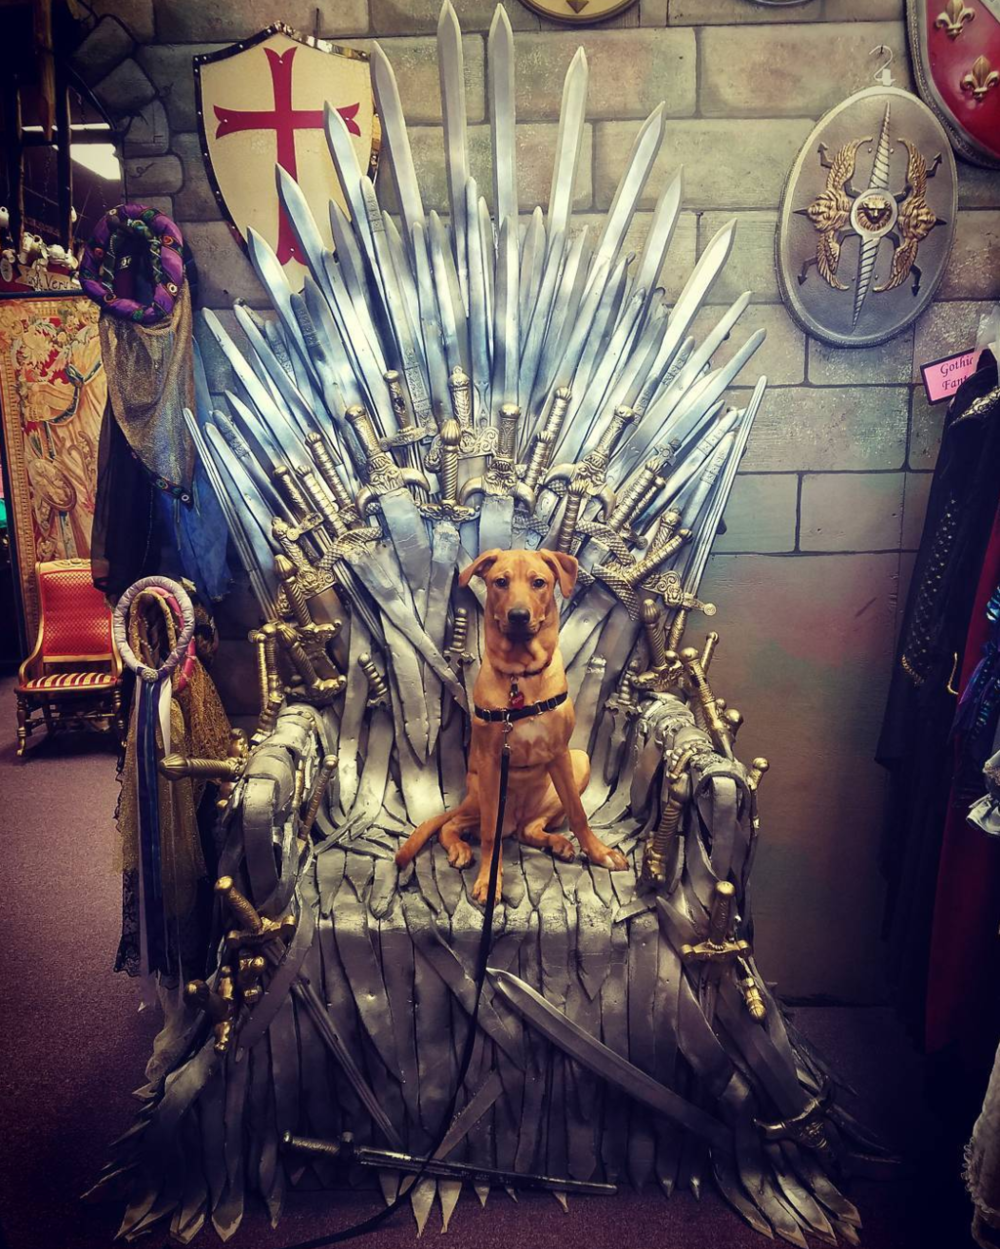 When the dire wolf takes the throne. Photo by @storyjoey.